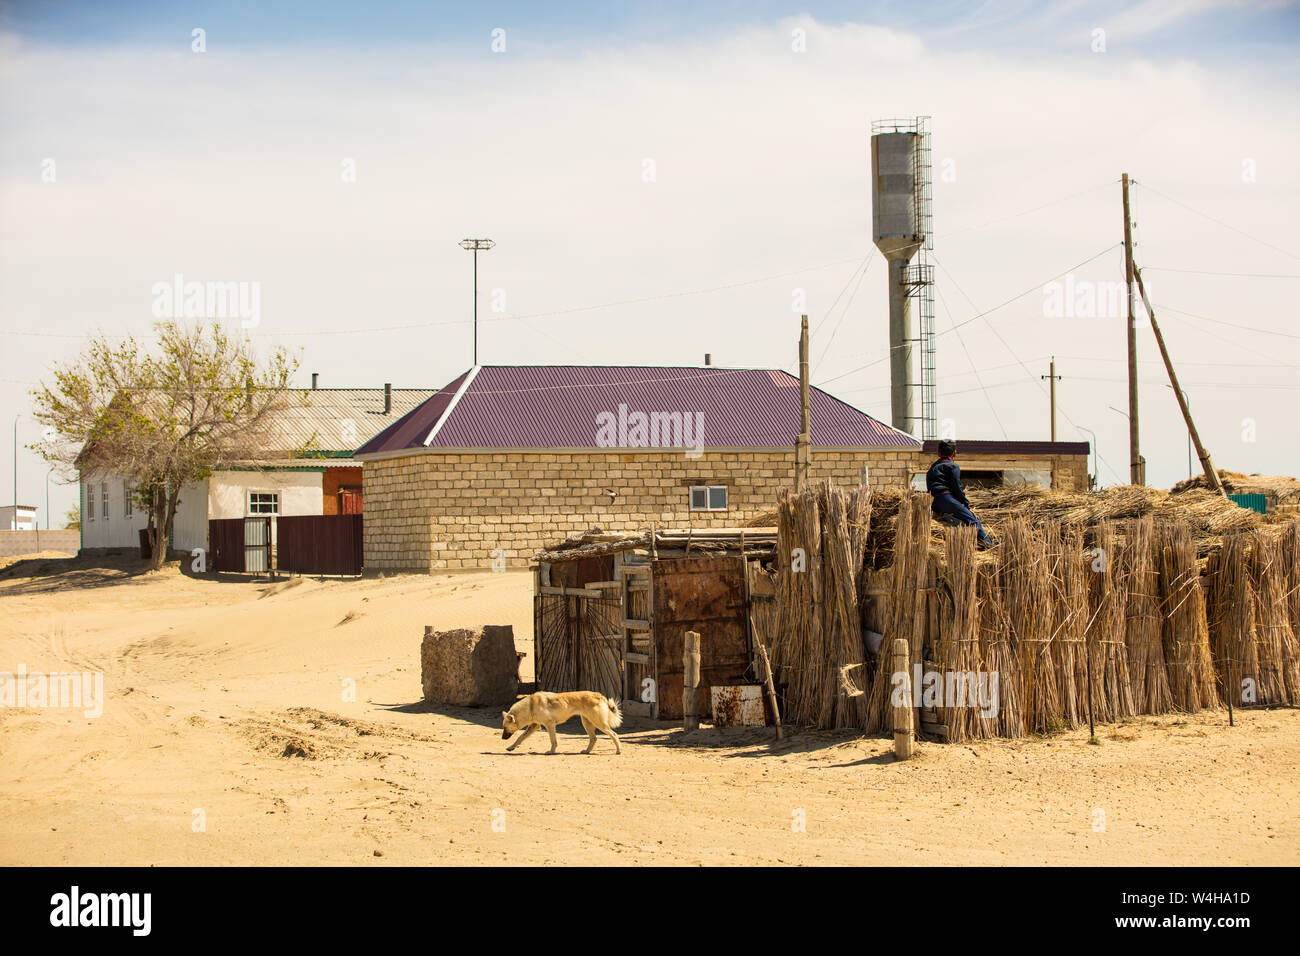 village-in-the-desert-sands-in-the-south